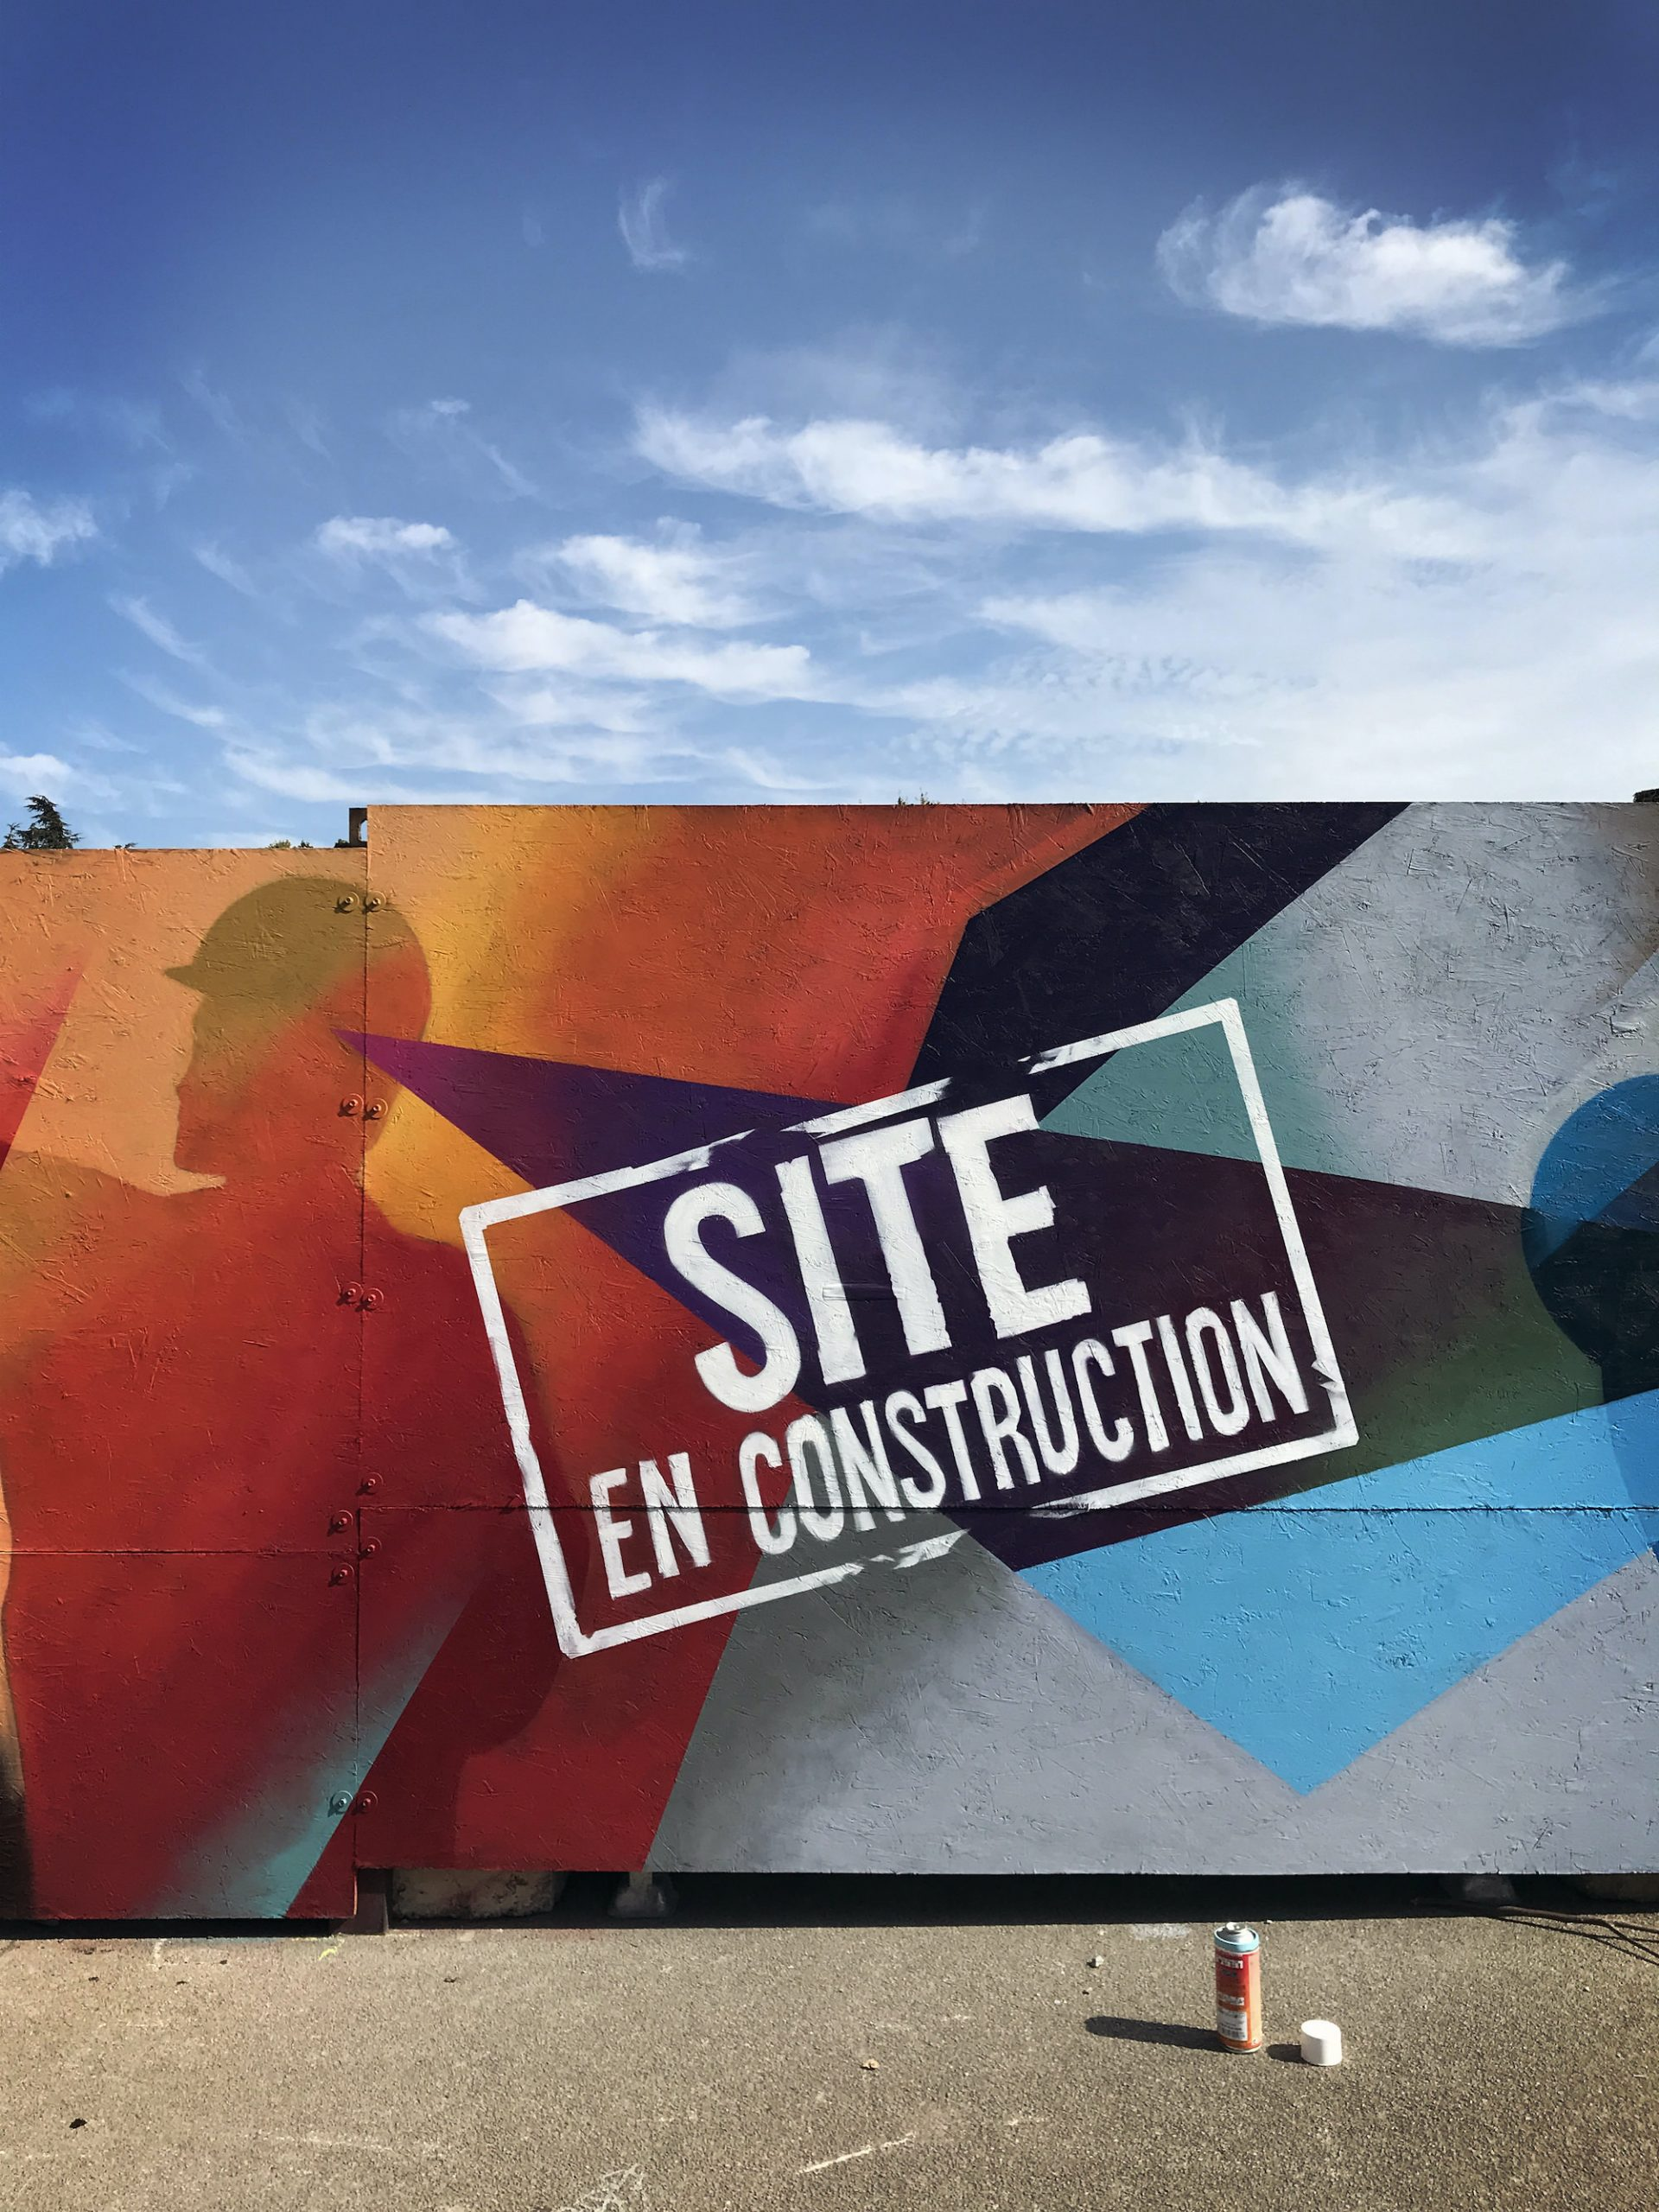 chantier construction icade ynov campus graffiti streetart toulouse